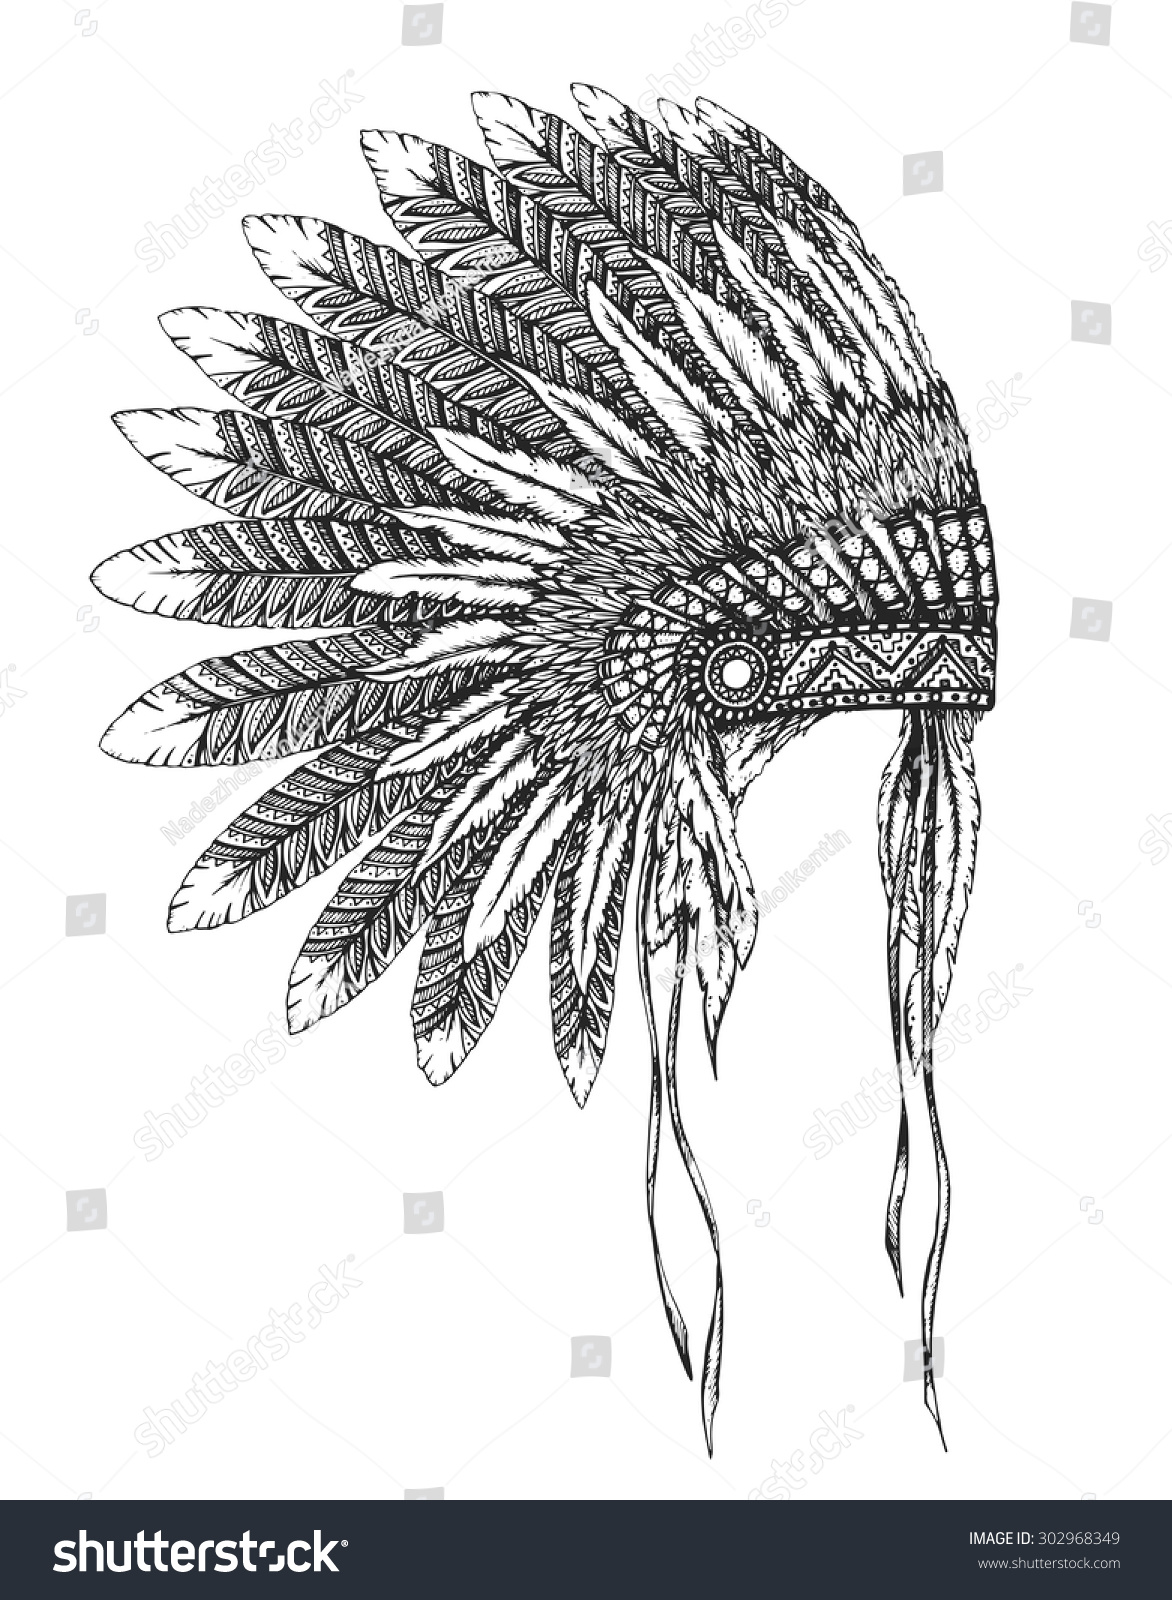 Native american indian headdress feathers sketch stock vector native american indian headdress with feathers in a sketch style hand drawn vector illustration buycottarizona